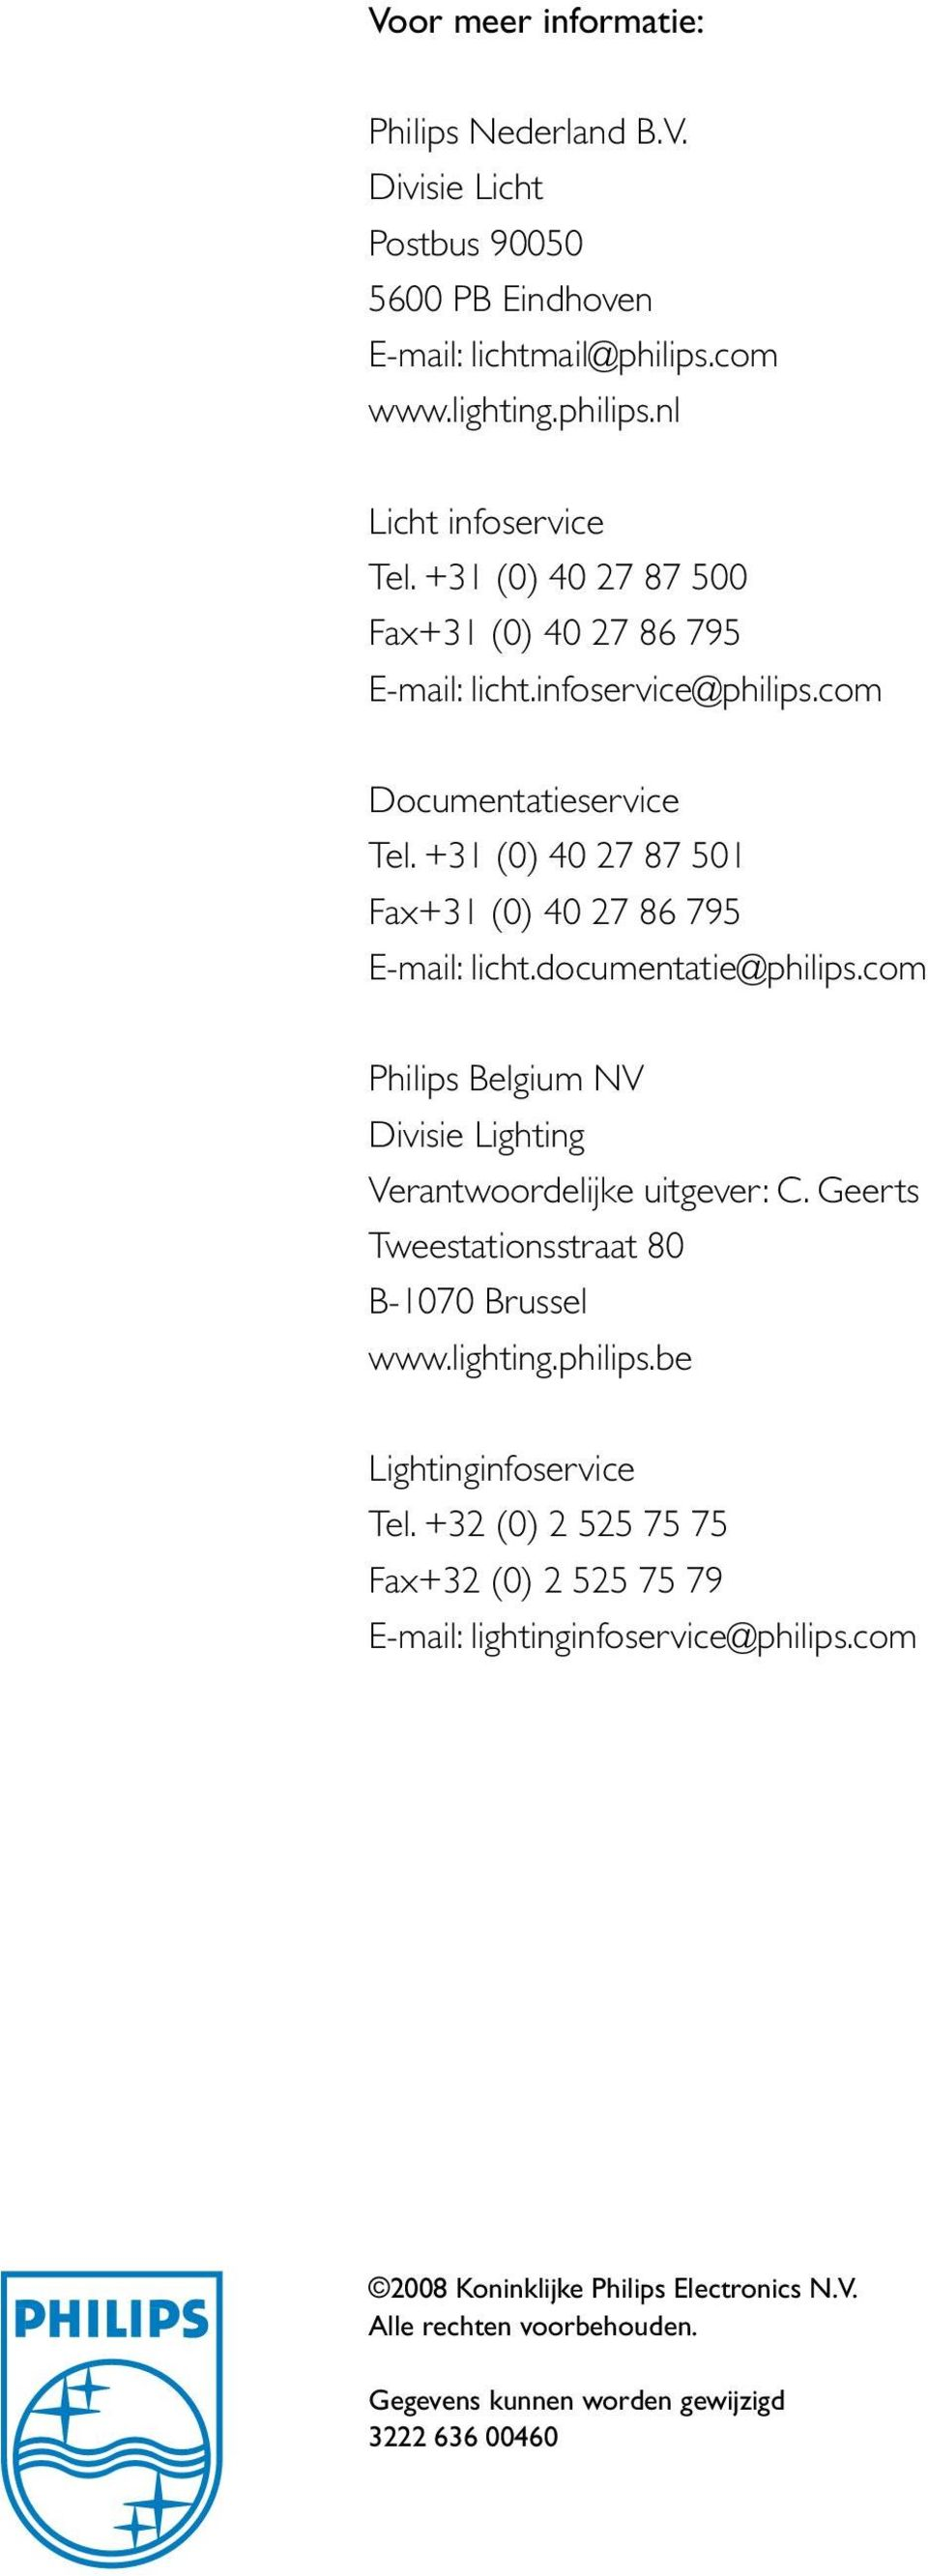 documentatie@philips.com Philips Belgium NV Divisie Lighting Verantwoordelijke uitgever: C. Geerts Tweestationsstraat 80 B-1070 Brussel www.lighting.philips.be Lightinginfoservice Tel.